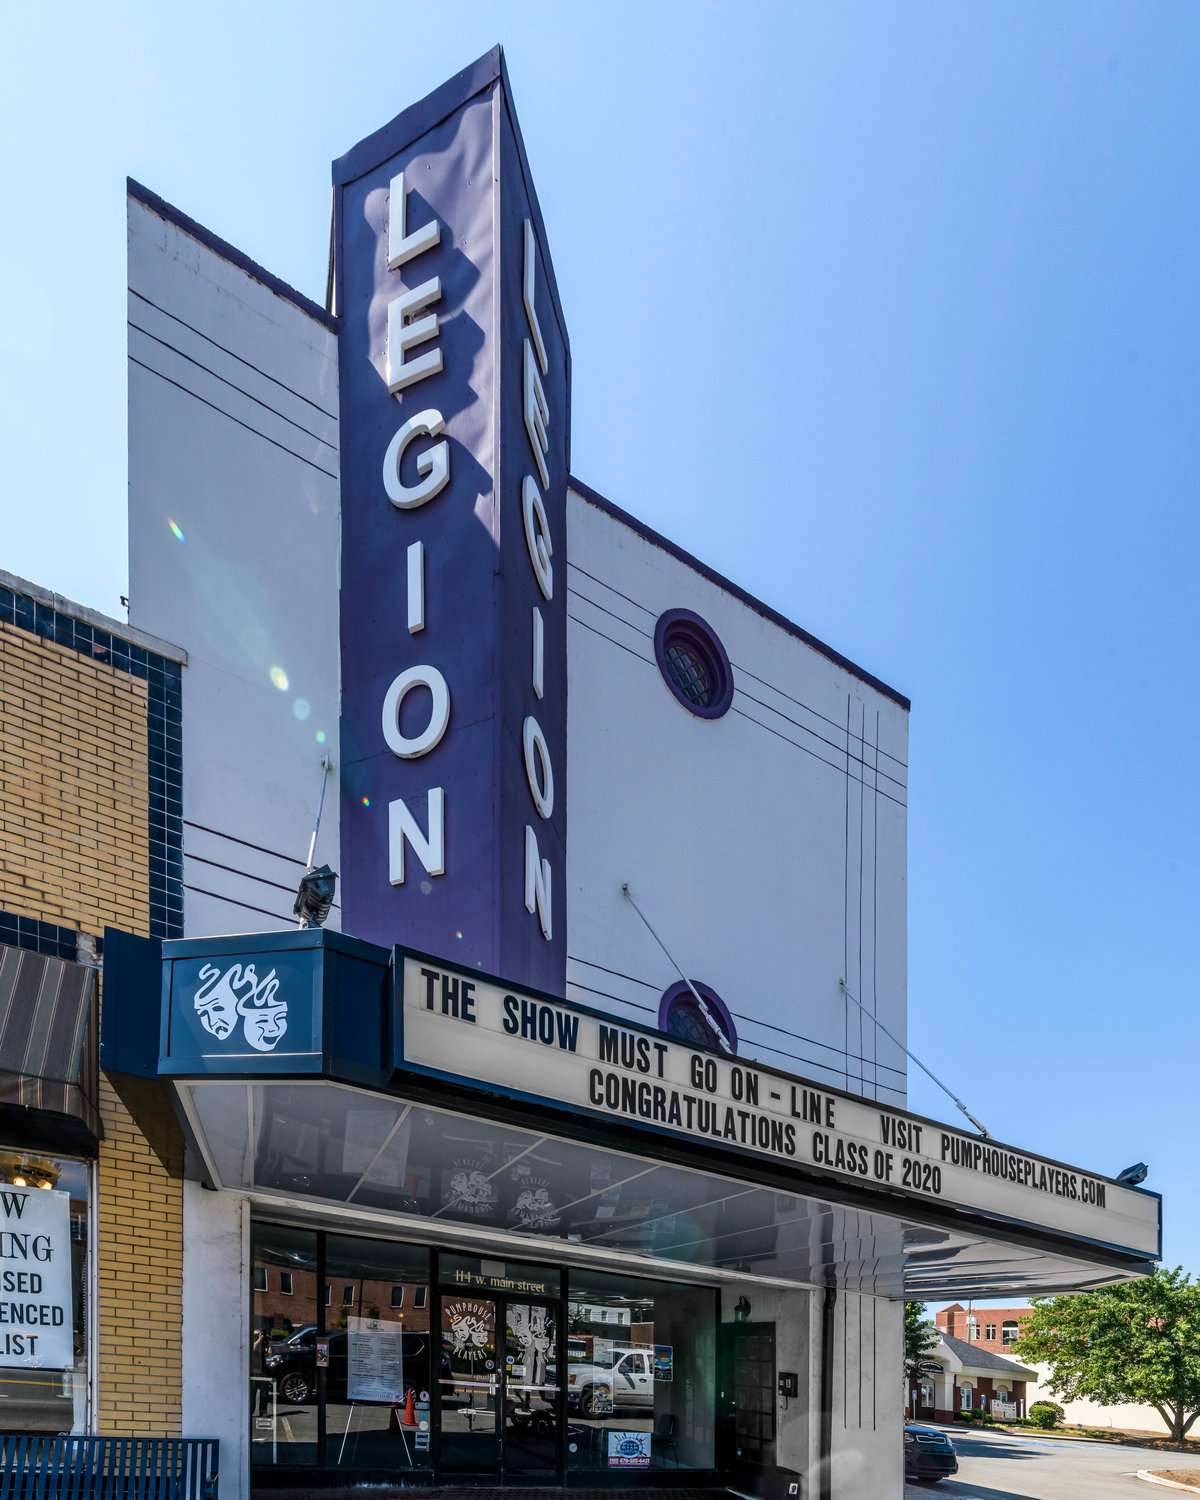 The Legion Theatre is one of two Cartersville venues highlighted in photographer Michael Boatright's Dark Houses Atlanta project.